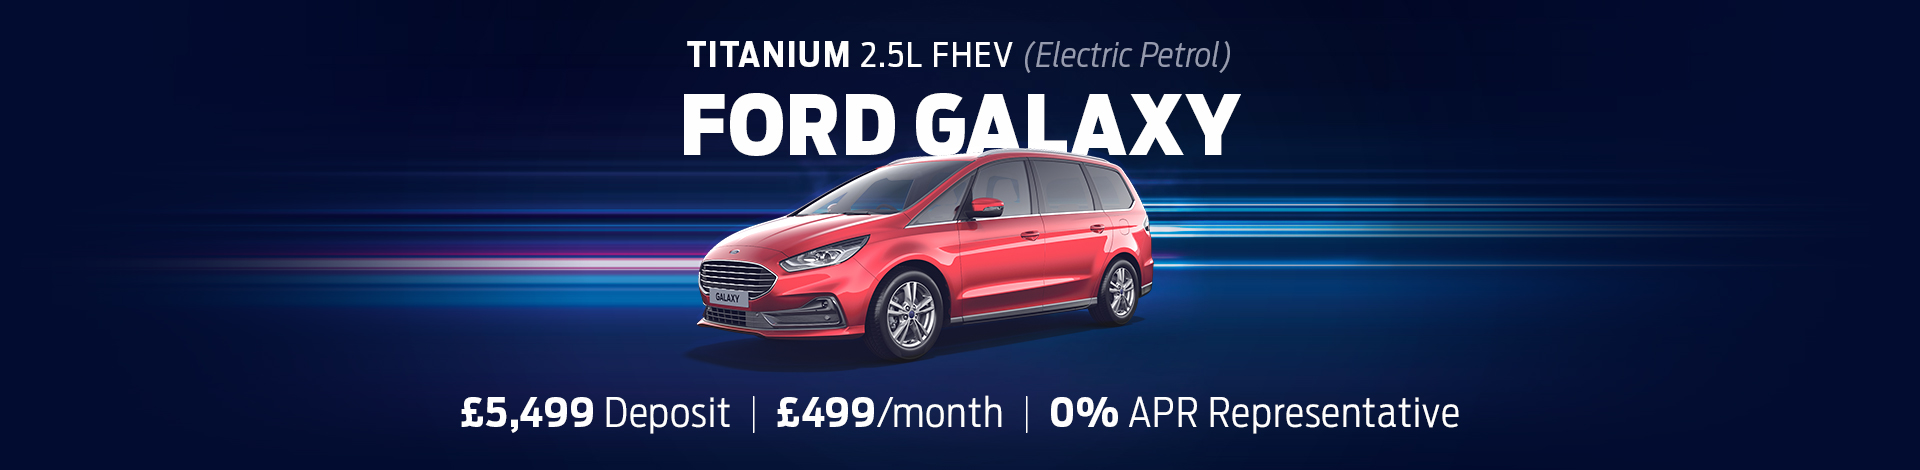 Ford Galaxy Offer Banner (Oct 21)